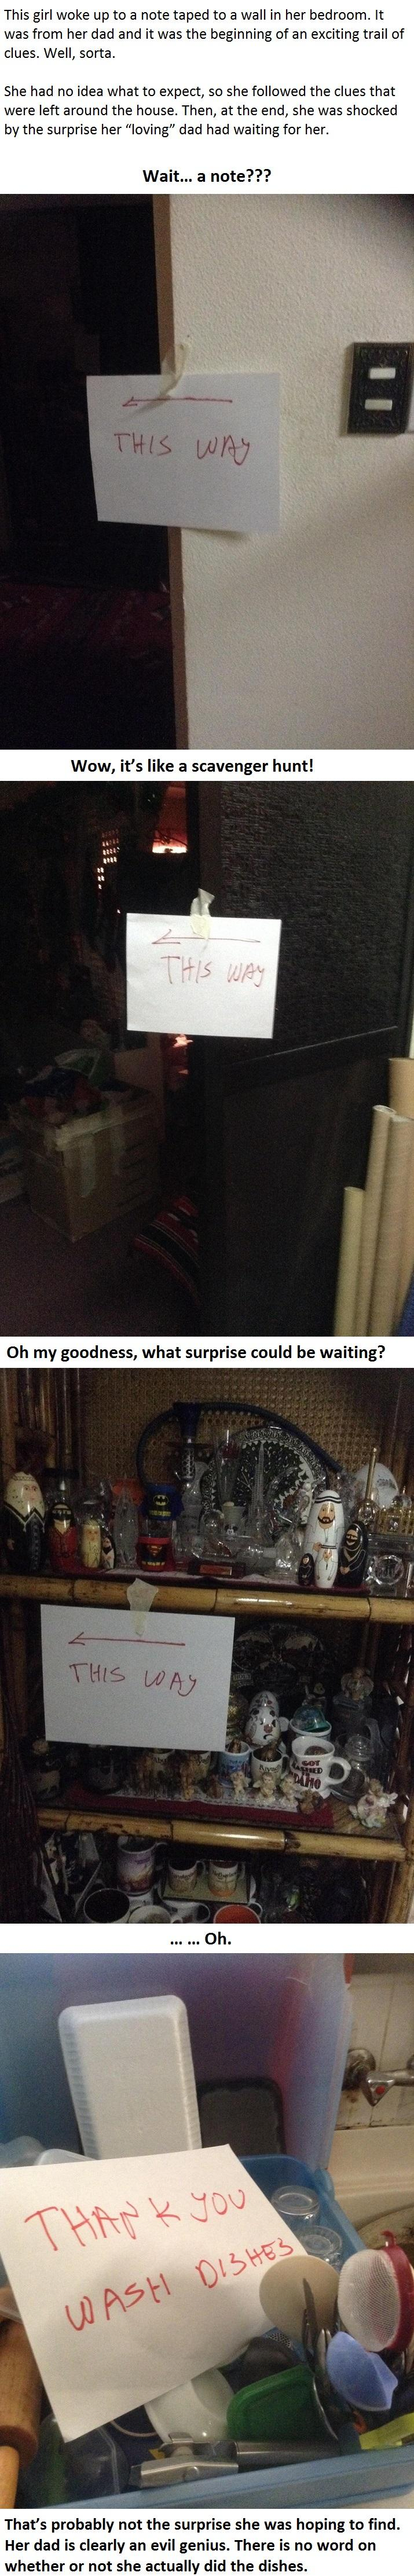 She Was Shocked By The Surprise Her Dad Had Waiting For Her... -   Misc